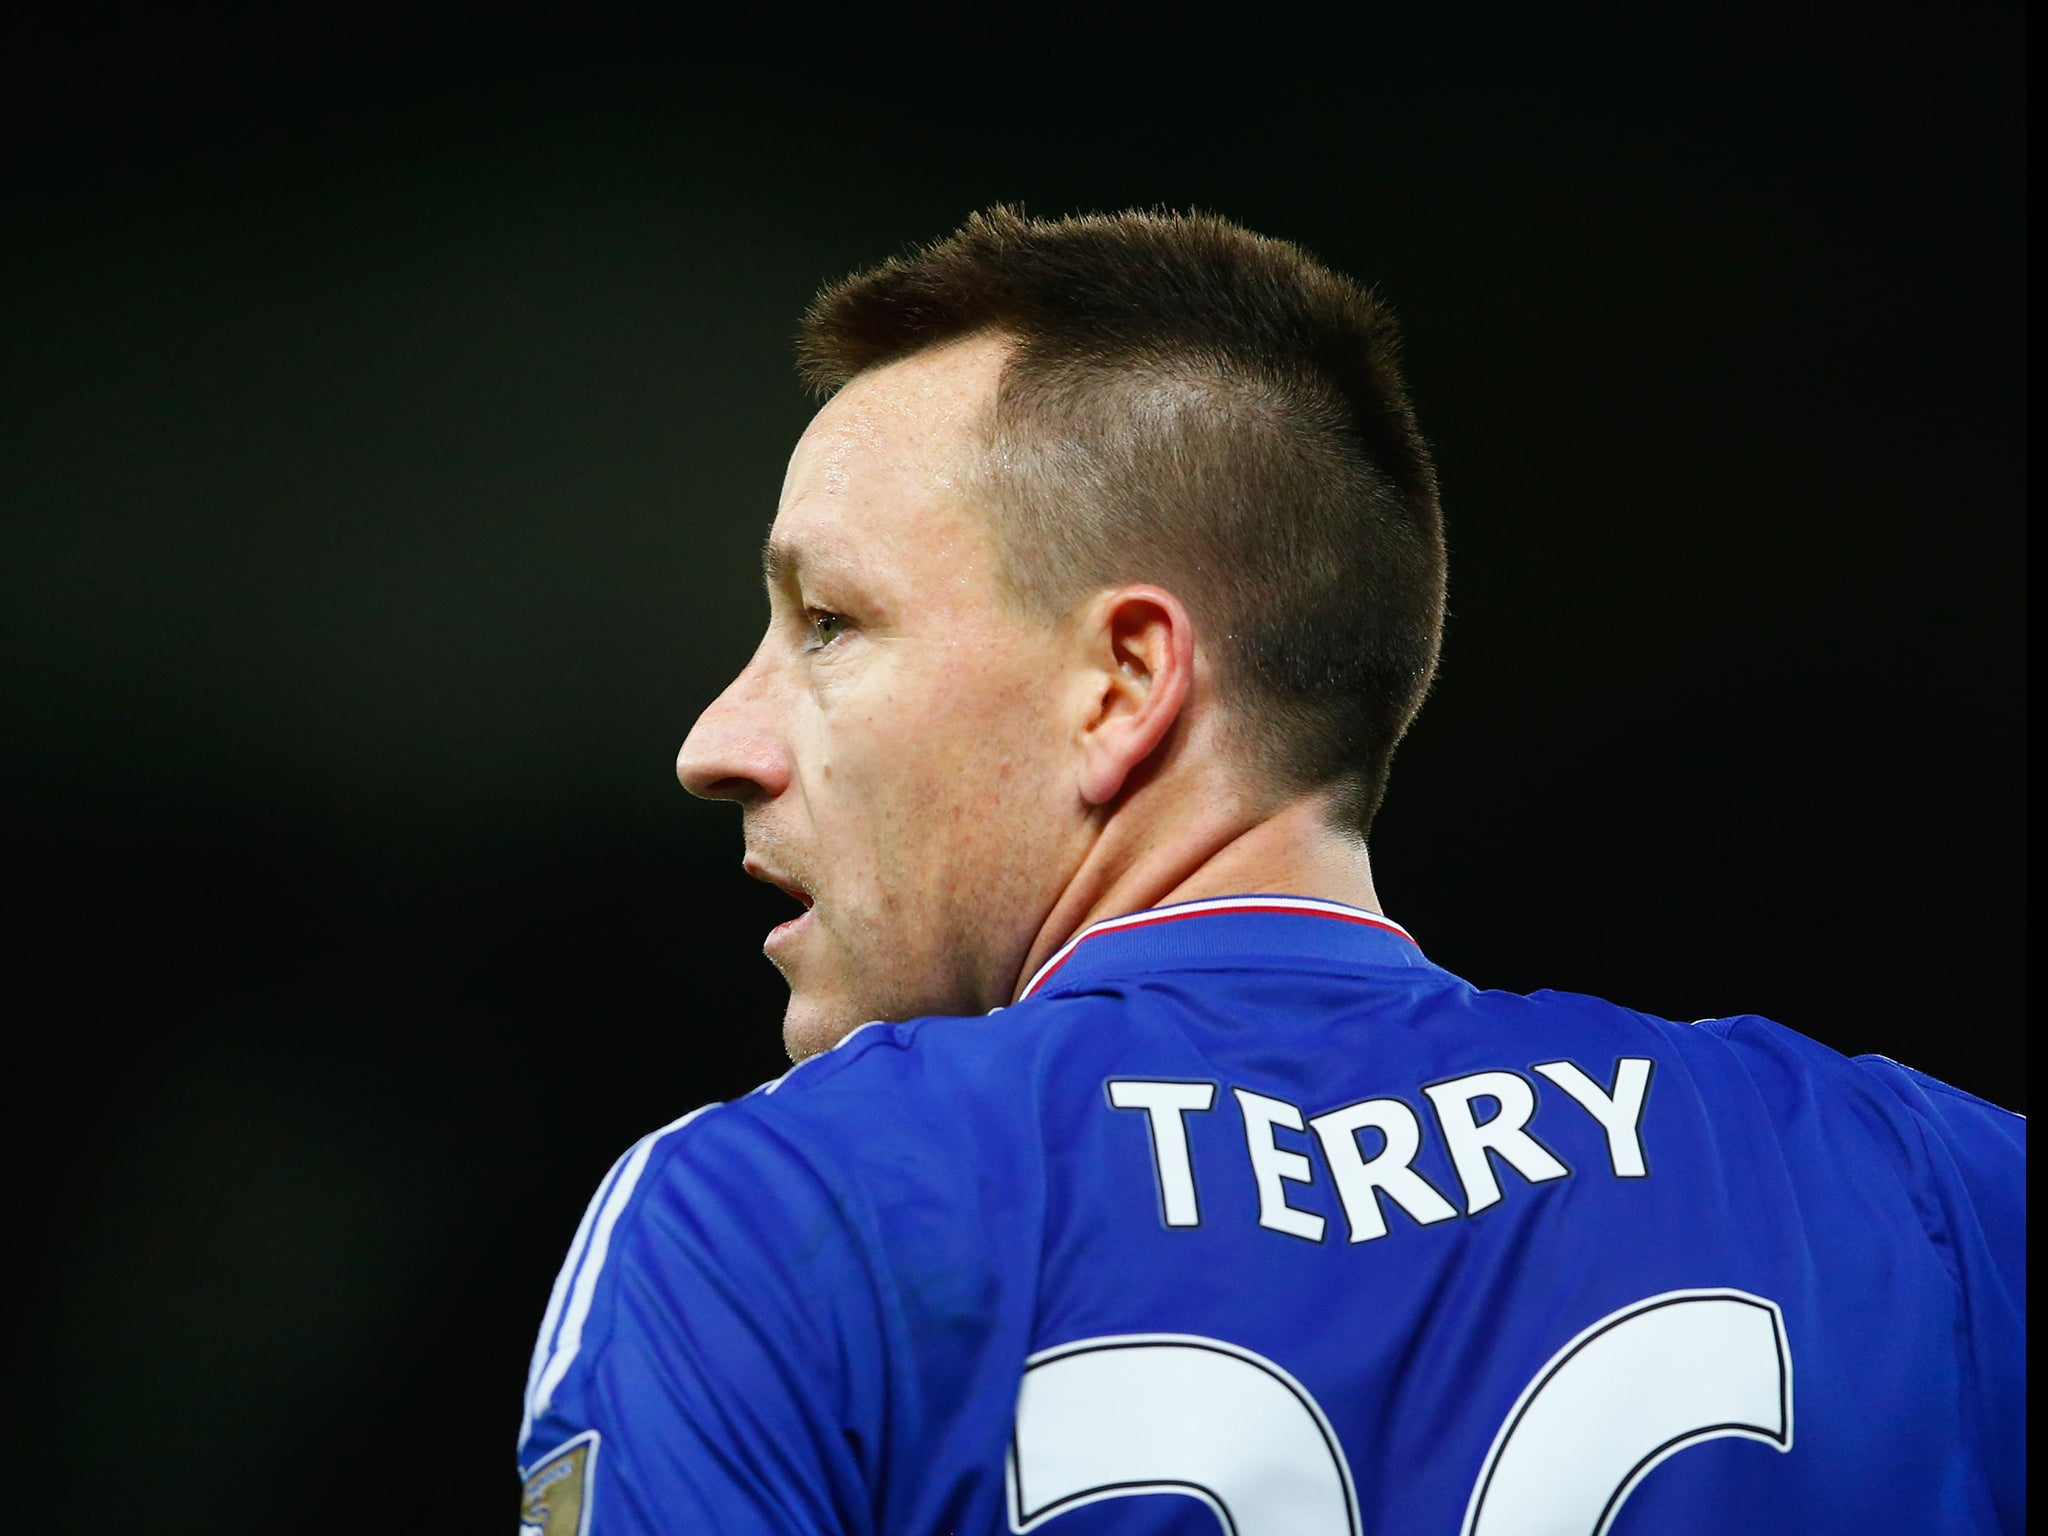 John Terry feels Chelsea will not budge over contract